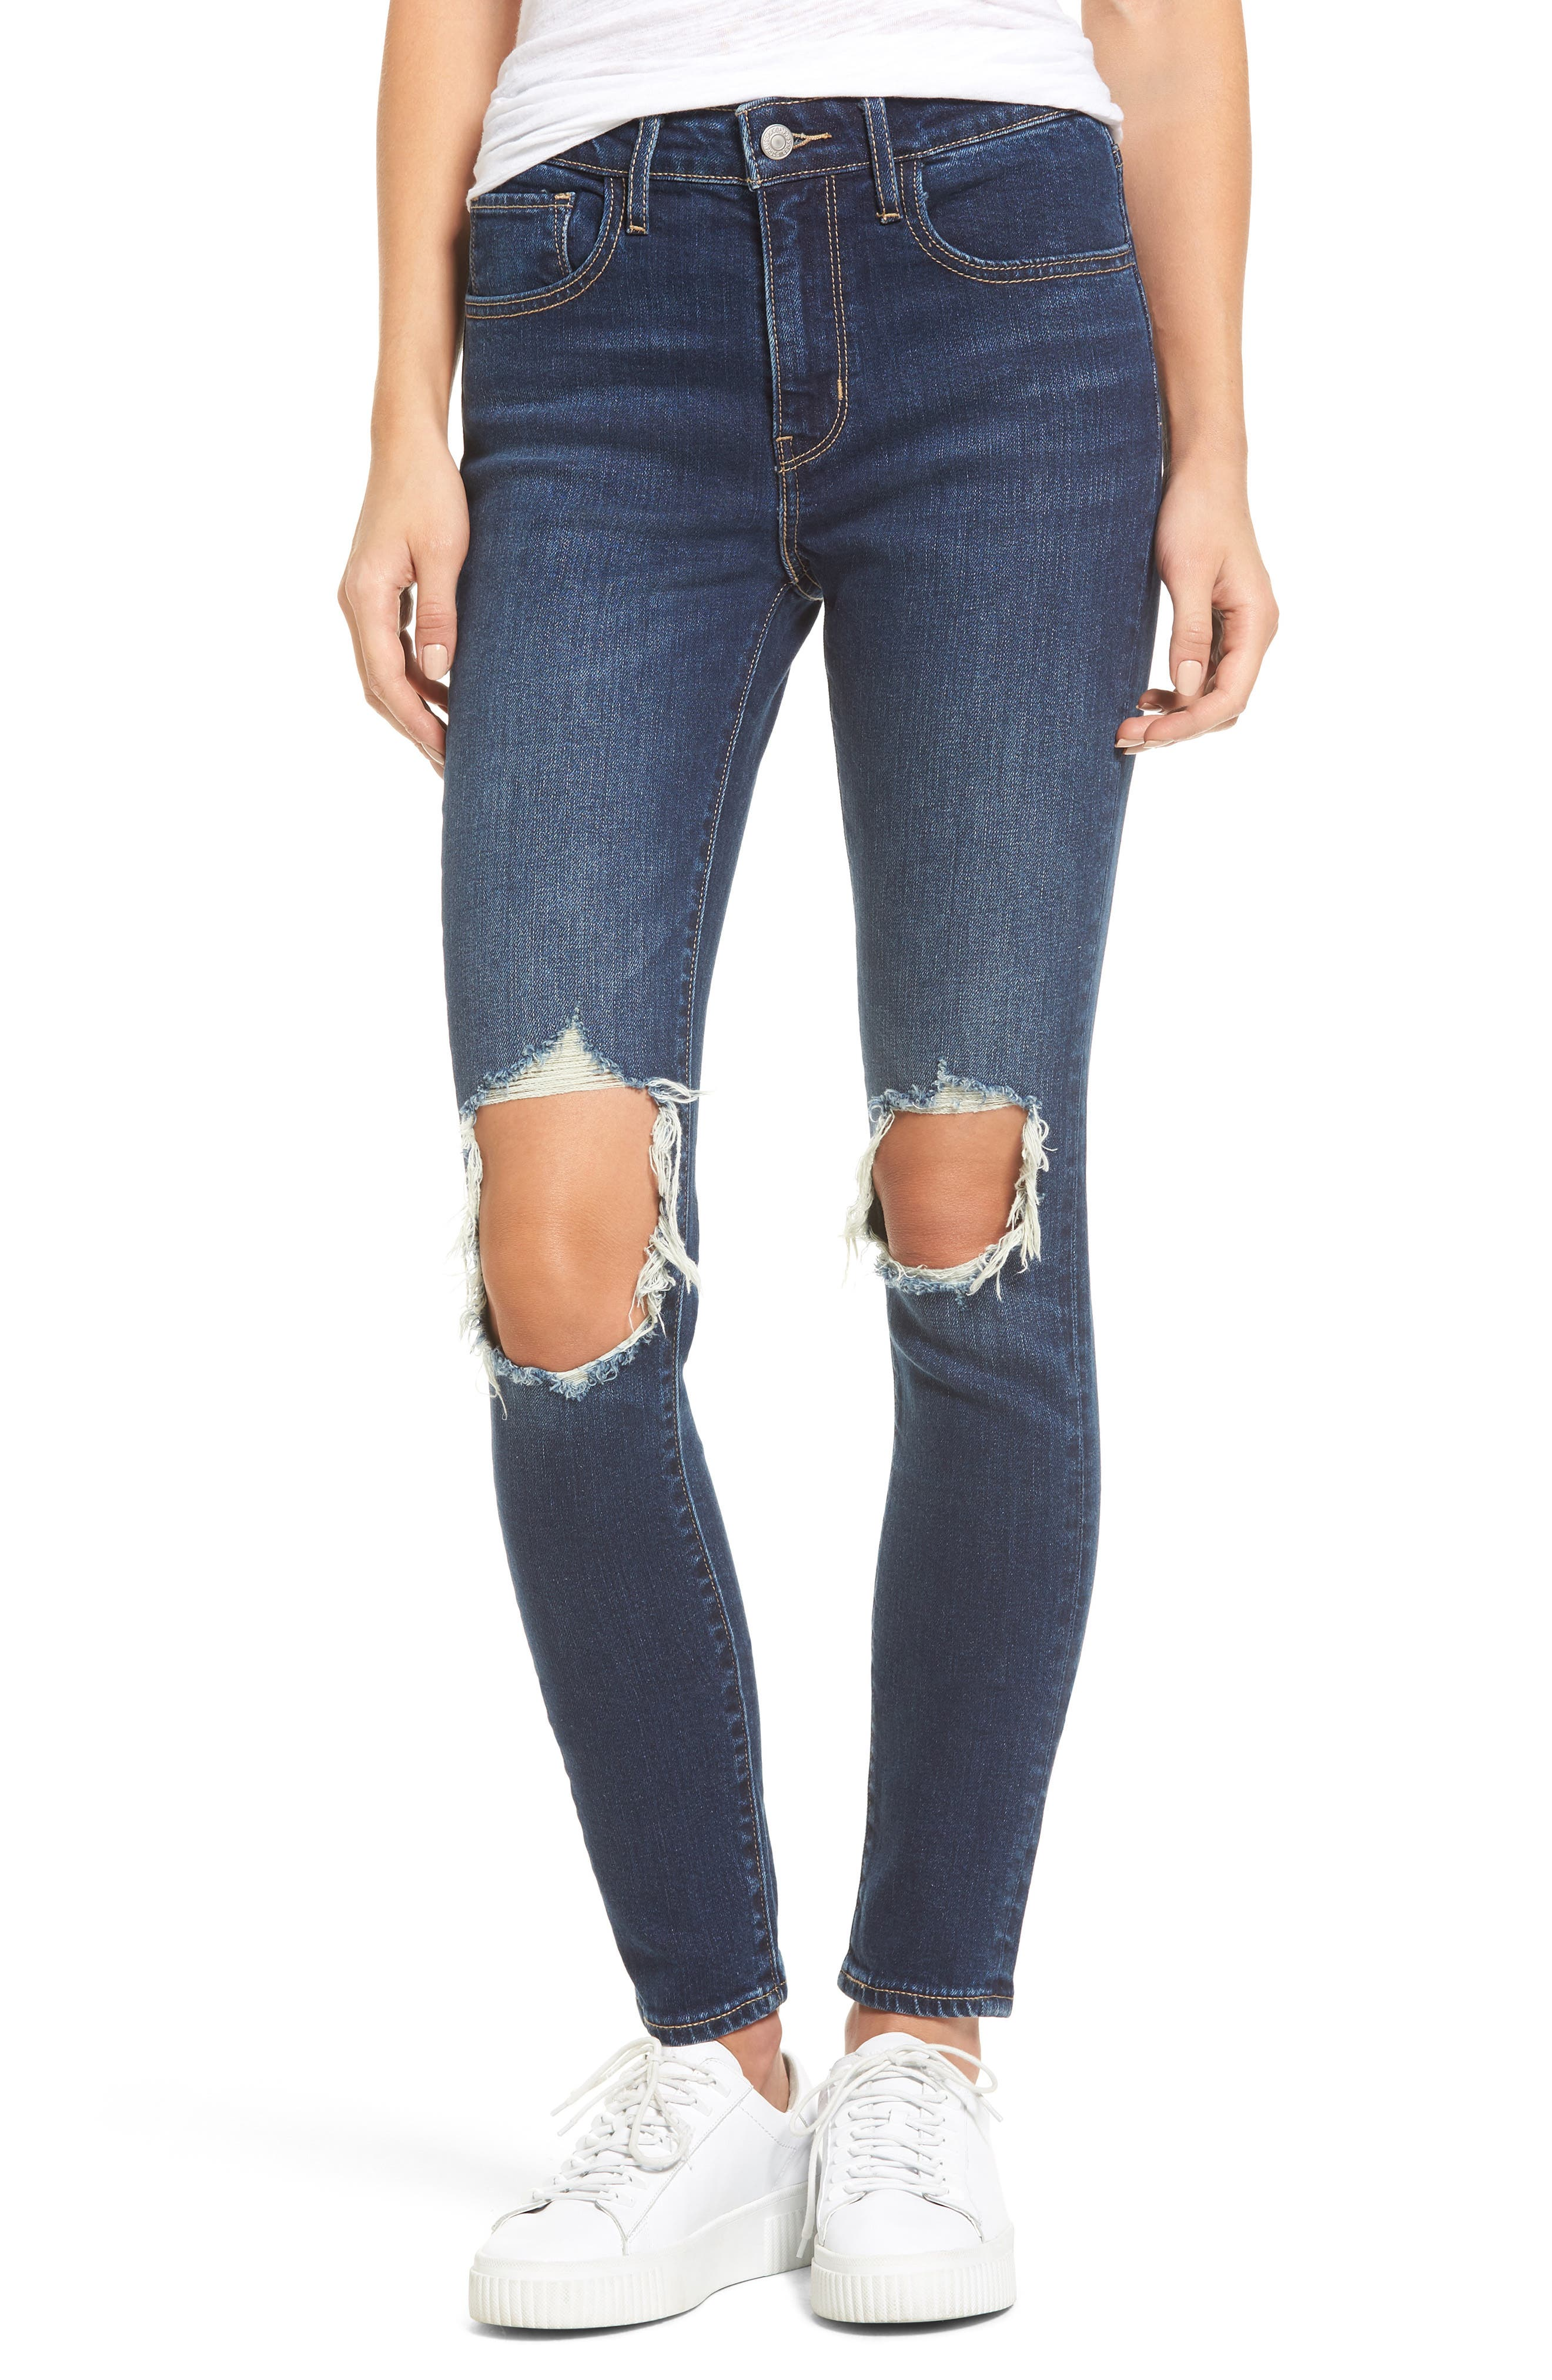 Alternate Image 1 Selected - Levi's® 721 Ripped High Waist Skinny Jeans (Rough Day)